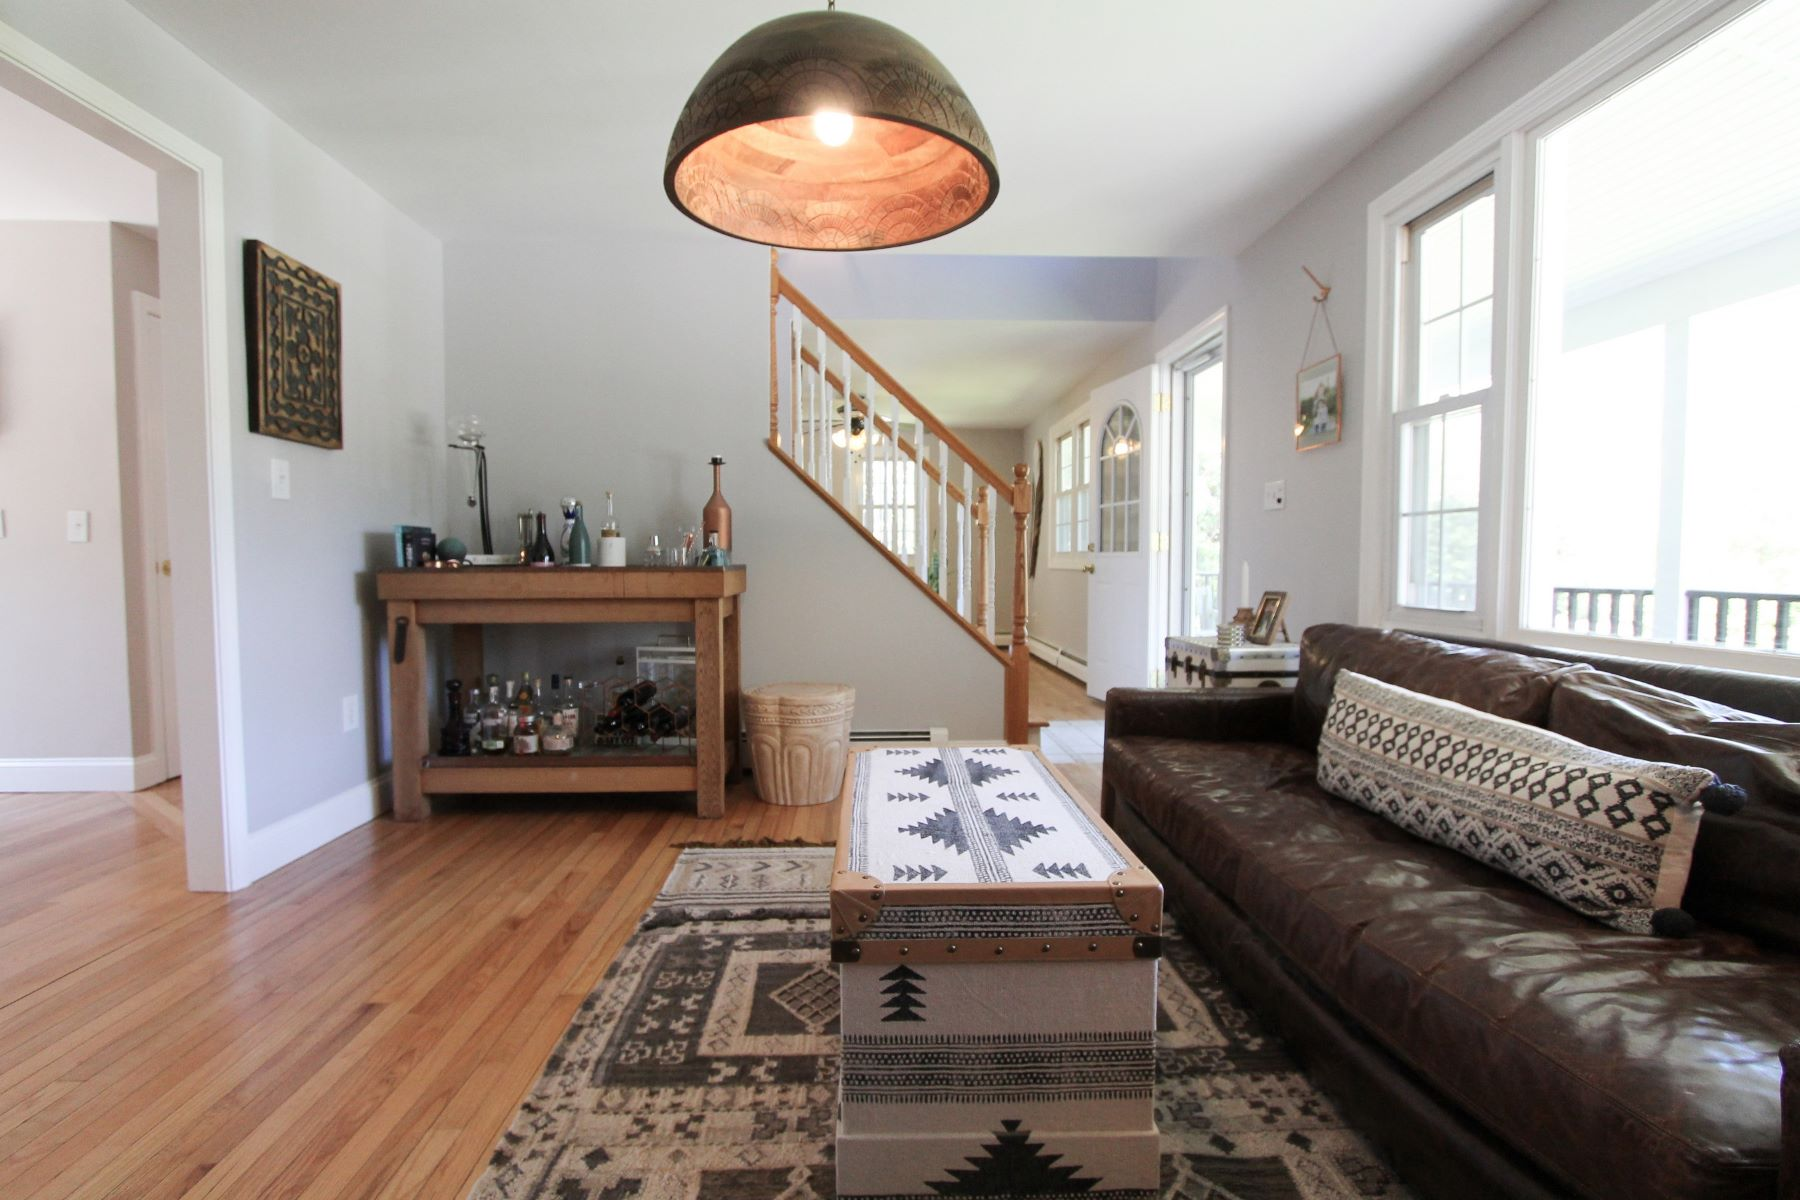 Additional photo for property listing at Jamestown Shores Home 433 Beacon Avenue Jamestown, Rhode Island 02835 United States